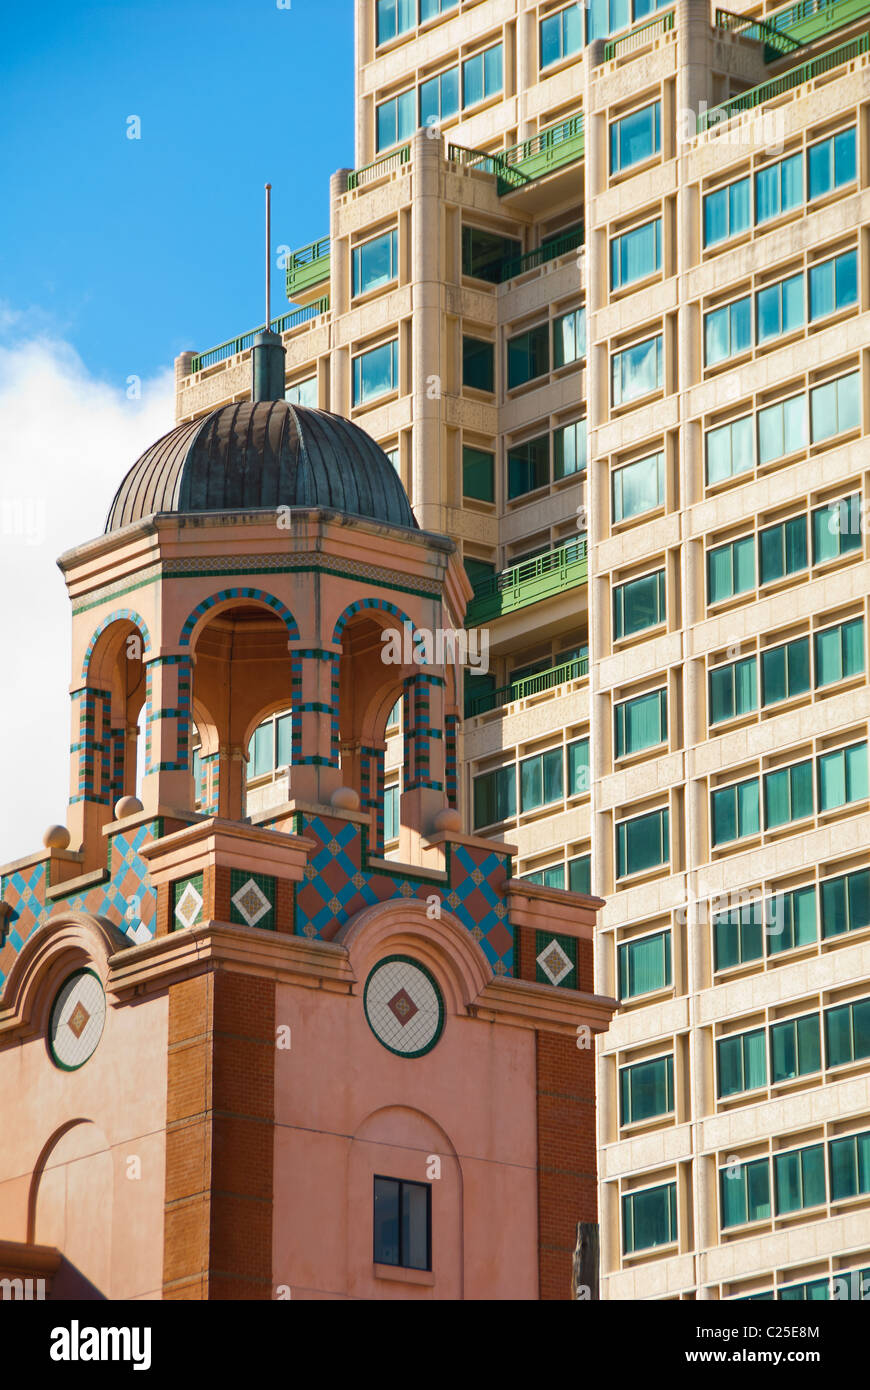 architecturally diverse buildings in downtown St. Petersburg, Florida - Stock Image